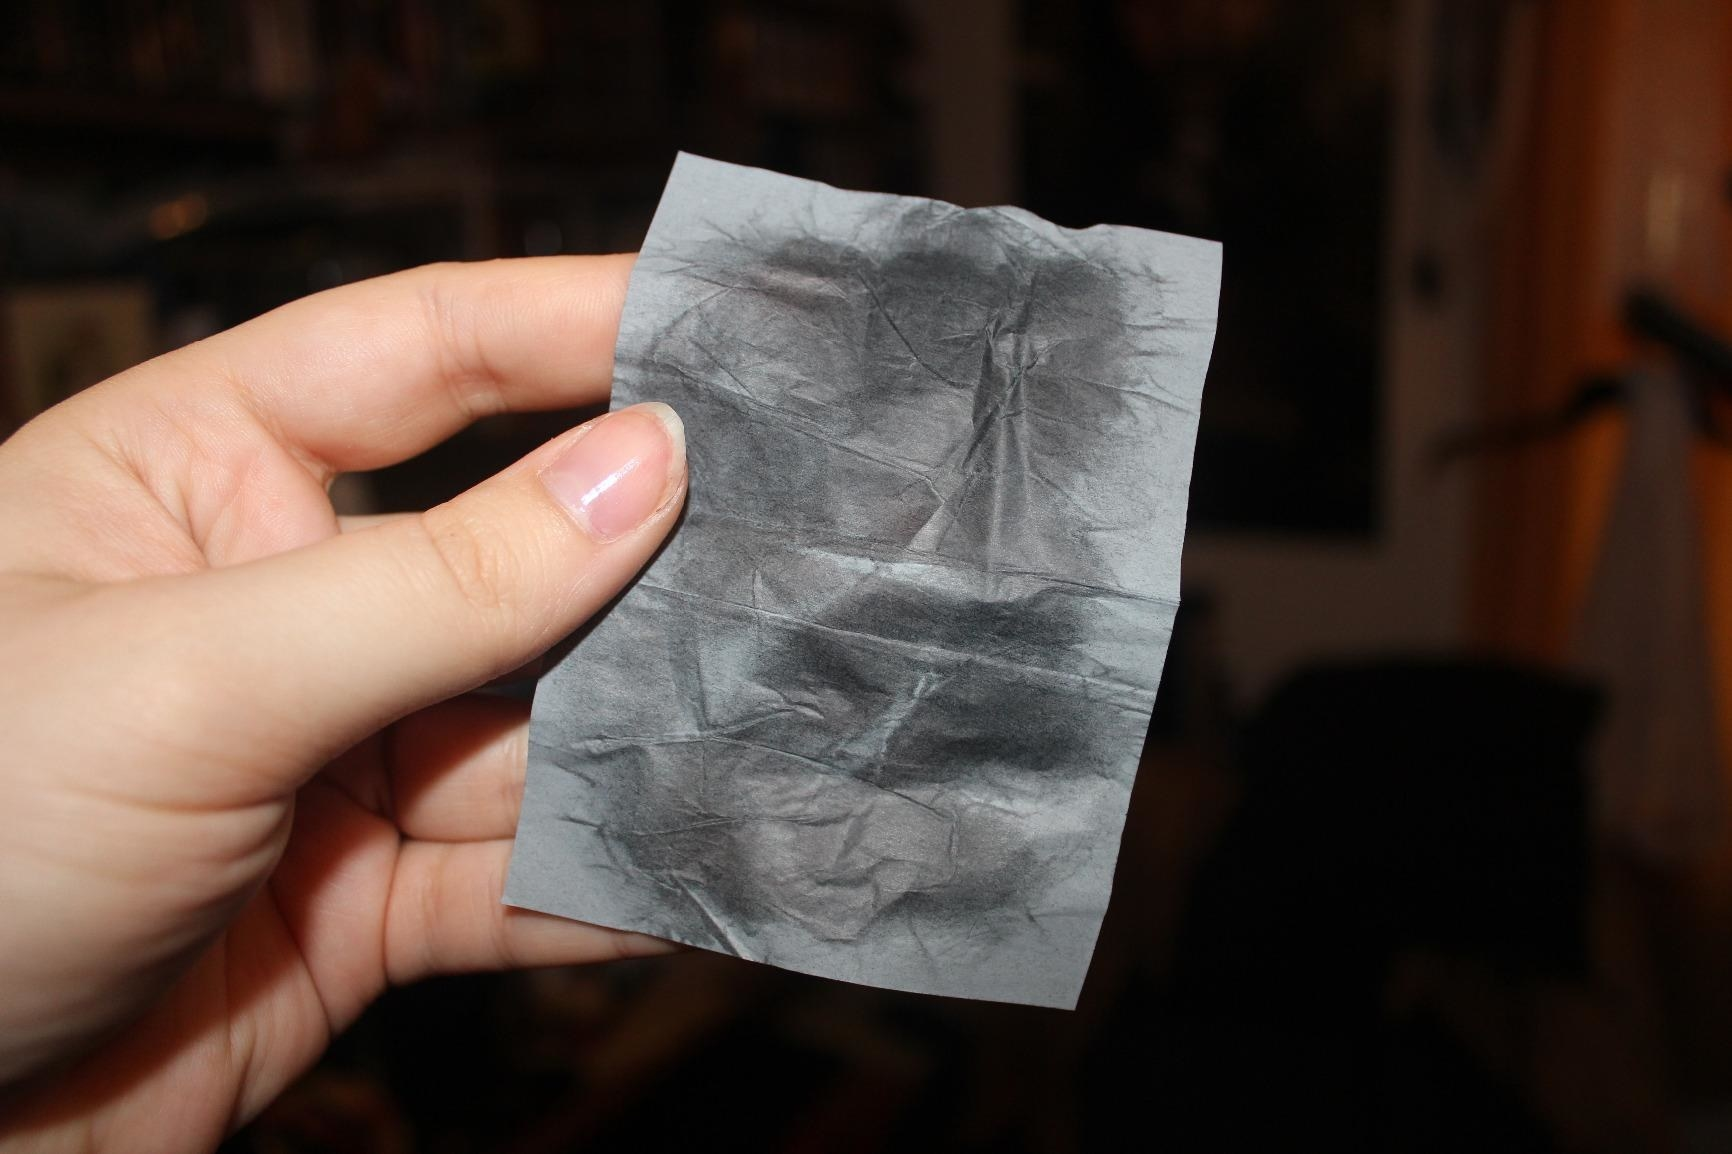 A hand holding a blotting sheet that appears to have absorbed oil